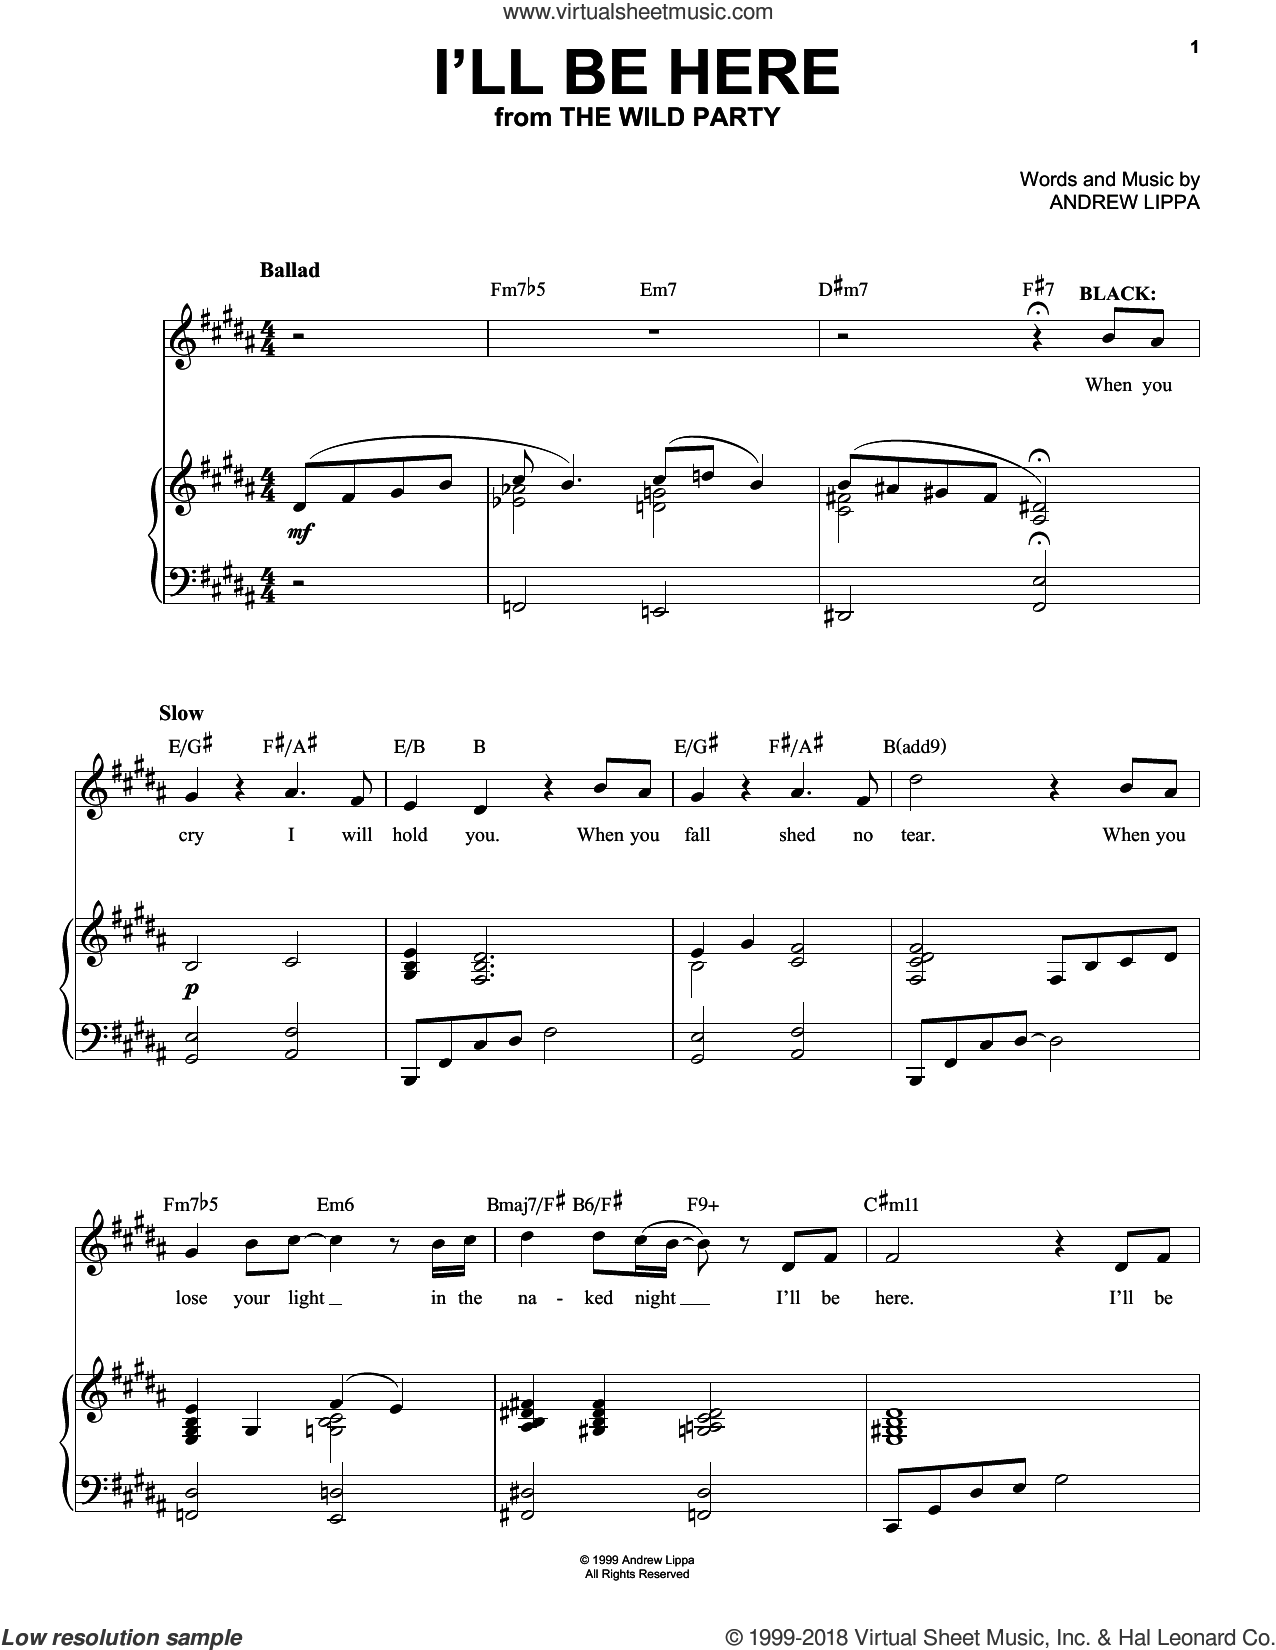 I'll Be Here sheet music for voice, piano or guitar by Andrew Lippa, intermediate skill level